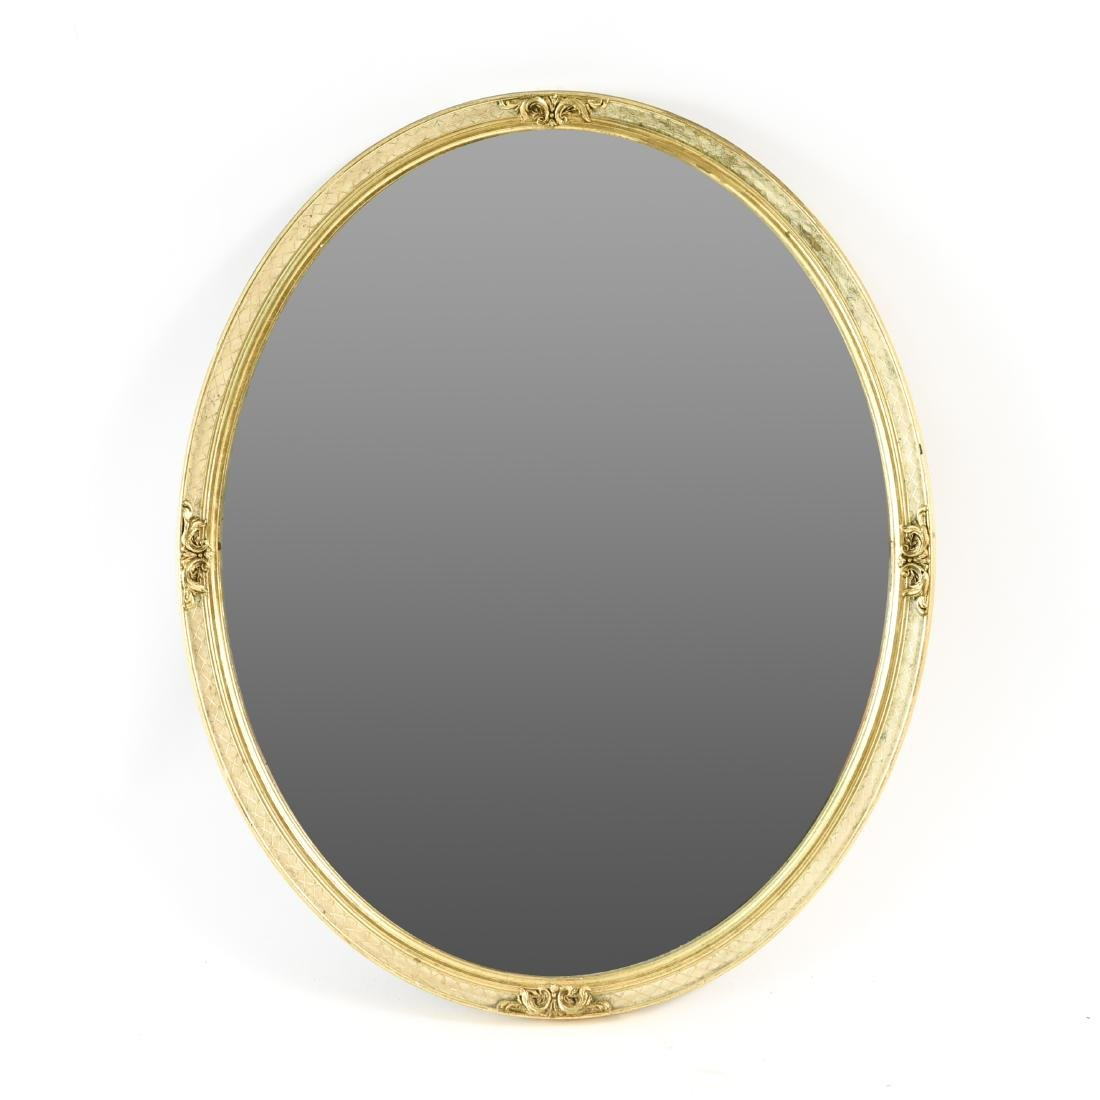 GOLD GILT FRAME OVAL MIRROR